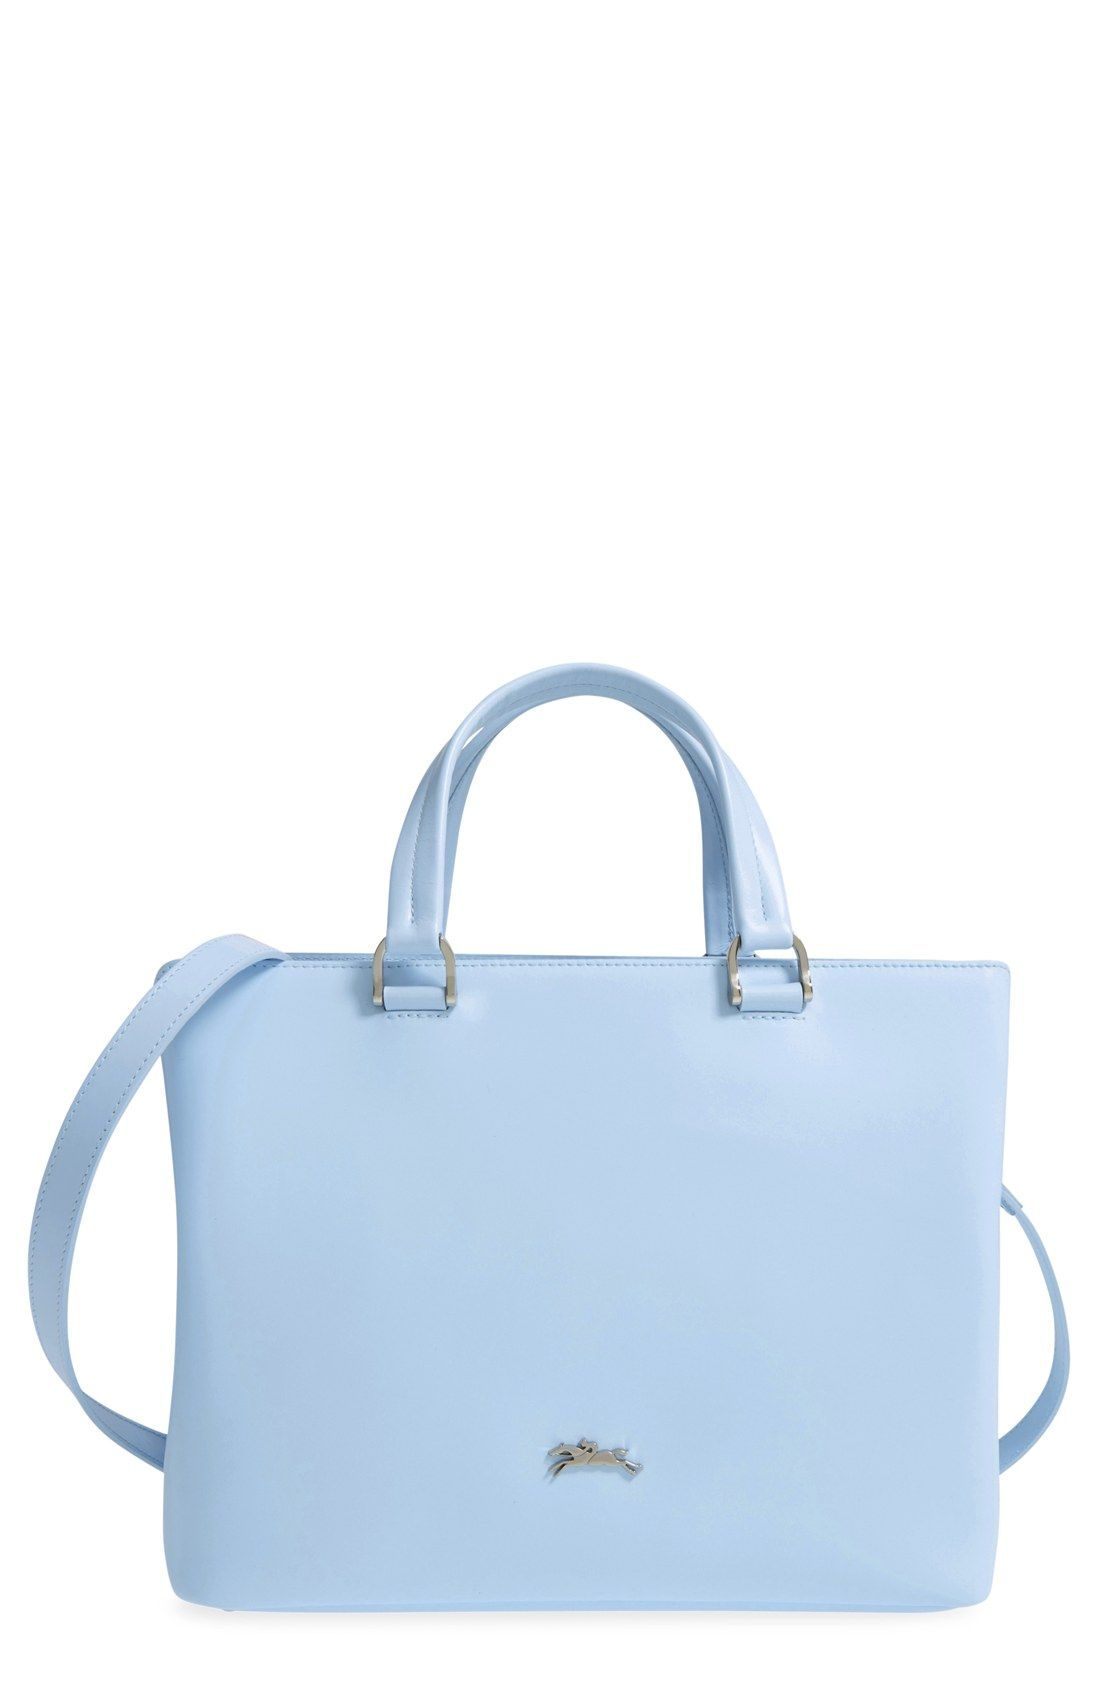 c8f916f475b1 Such a pretty color! This tote from Longchamp boasts pale blue ...